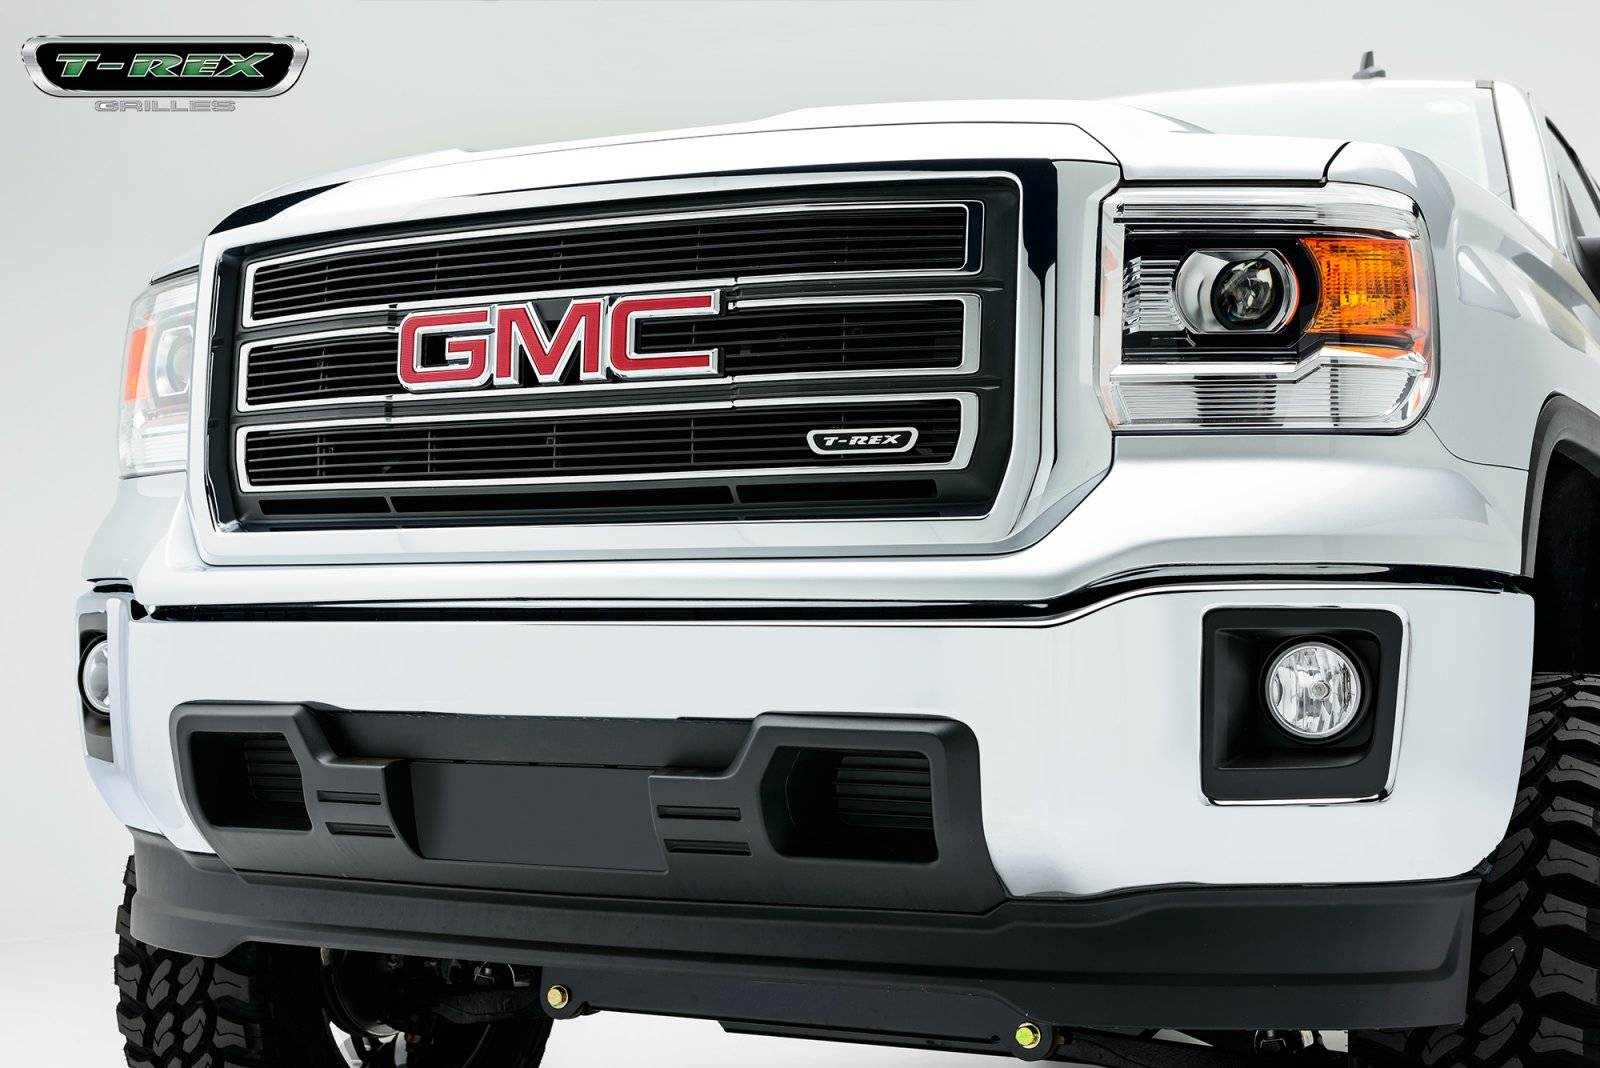 GMC Sierra Billet Grille, Main, Overlay, 4 Pc's, Black - Pt # 21208B